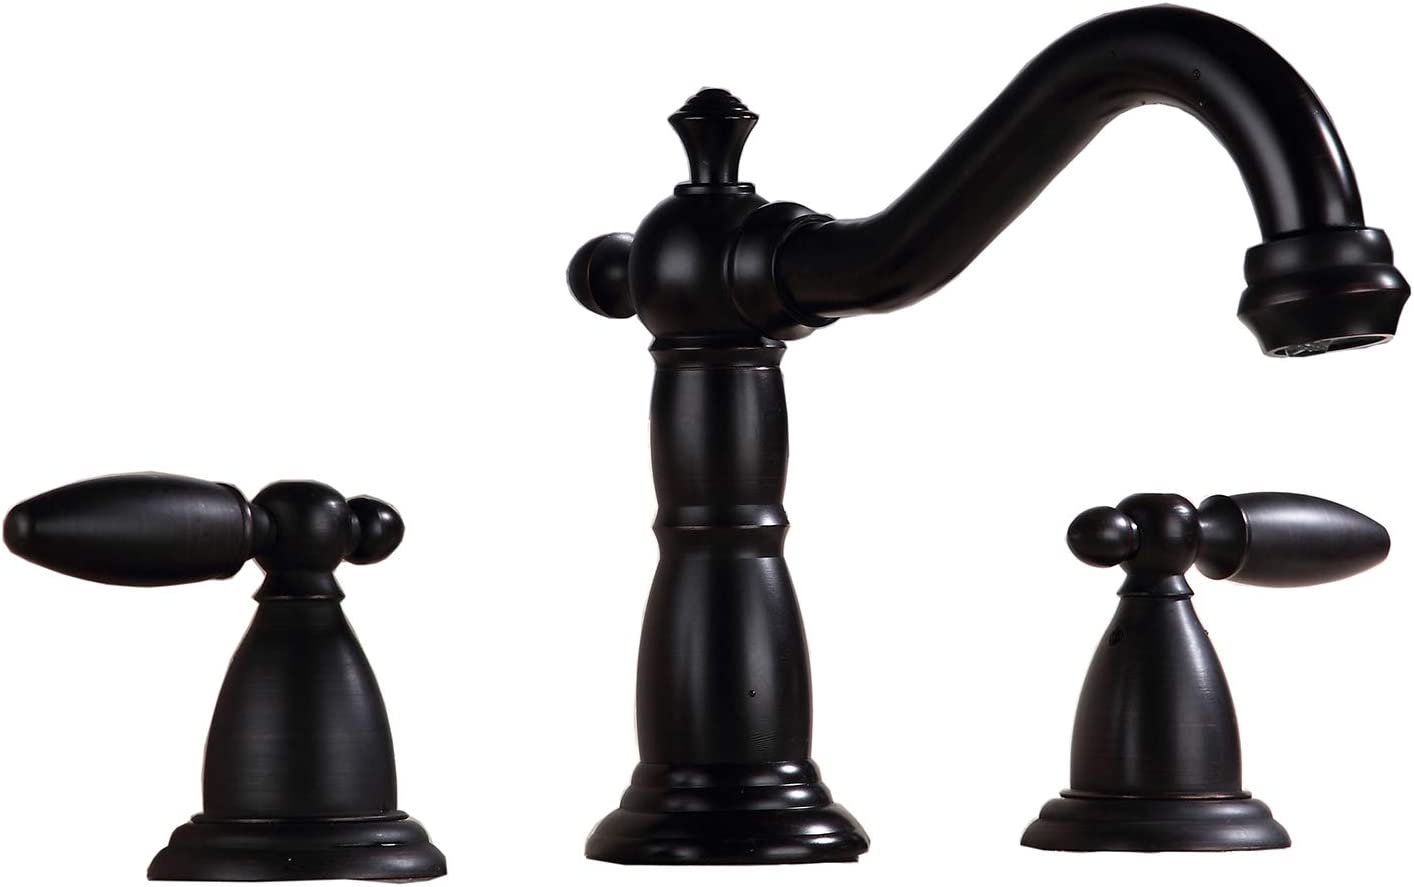 GGStudy Oil Rubbed Bronze Two Handles 3 Holes 8-16 inch Widespread Bathroom Sink Faucet